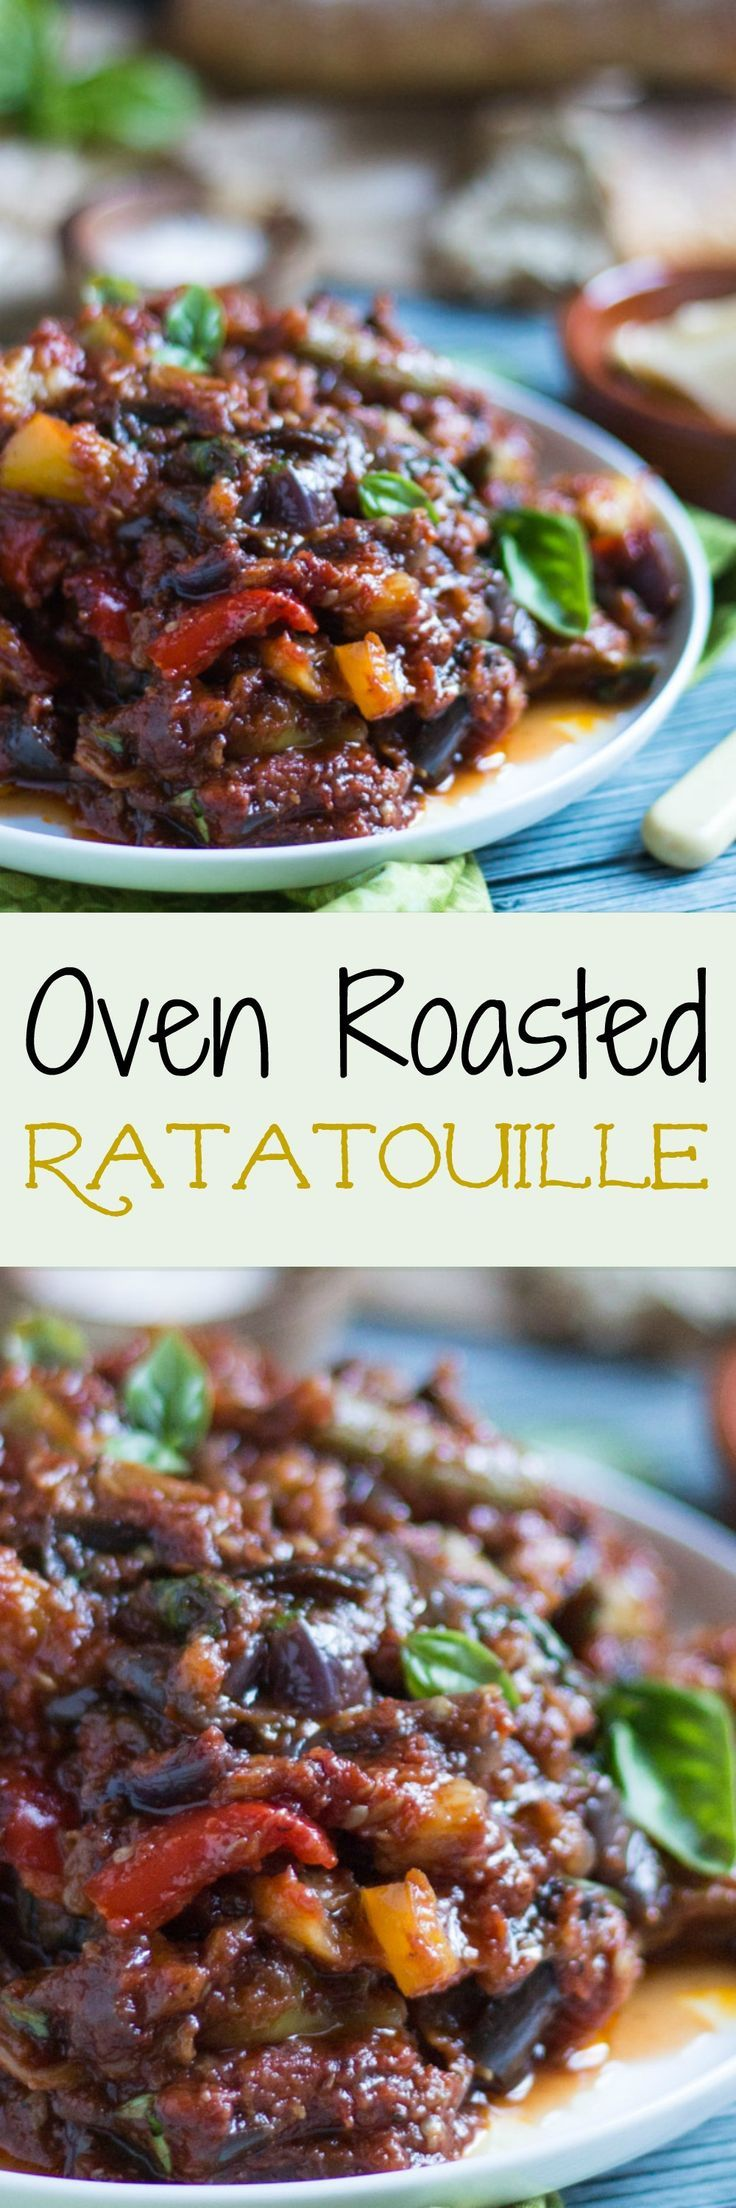 how to make ratatouille in the oven